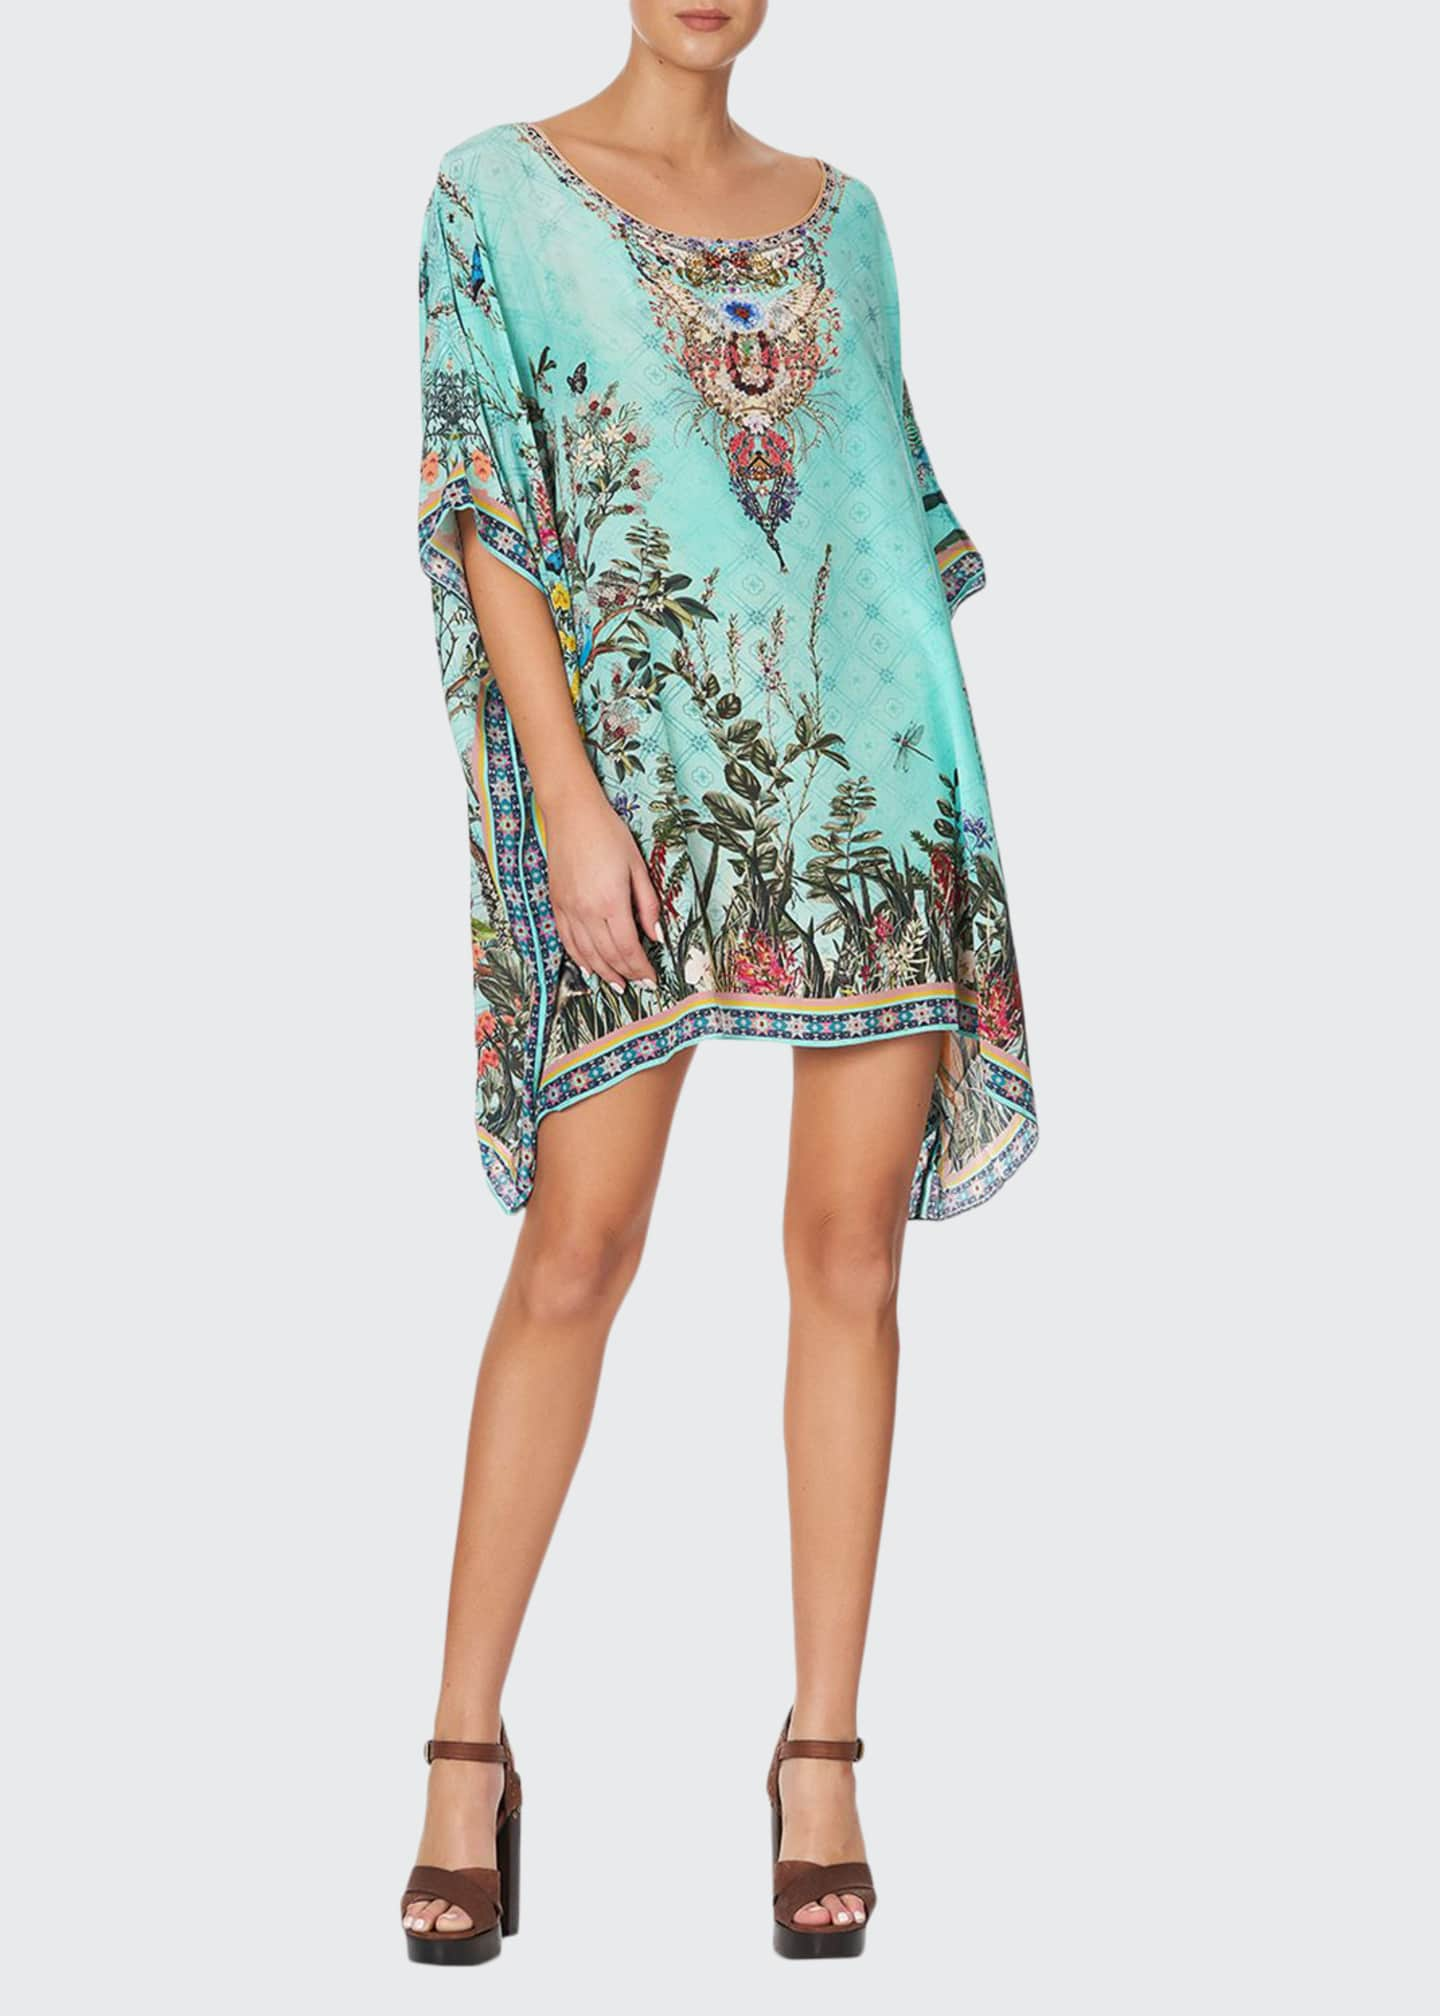 Camilla Crystal-Trim Short Round-Neck Caftan